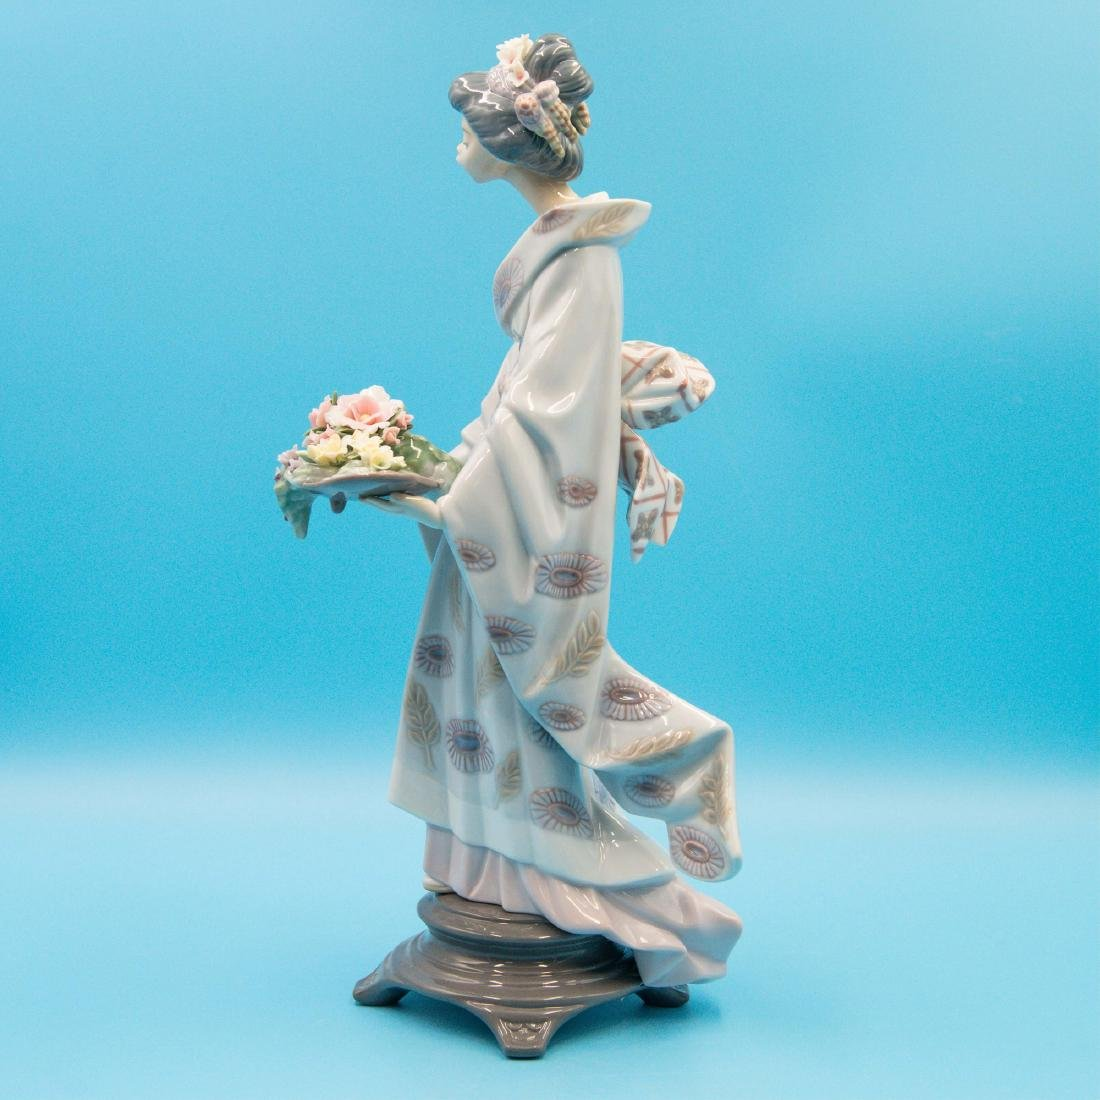 LLADRO NATURE'S GIFTS PORCELAIN FIGURINE - 2